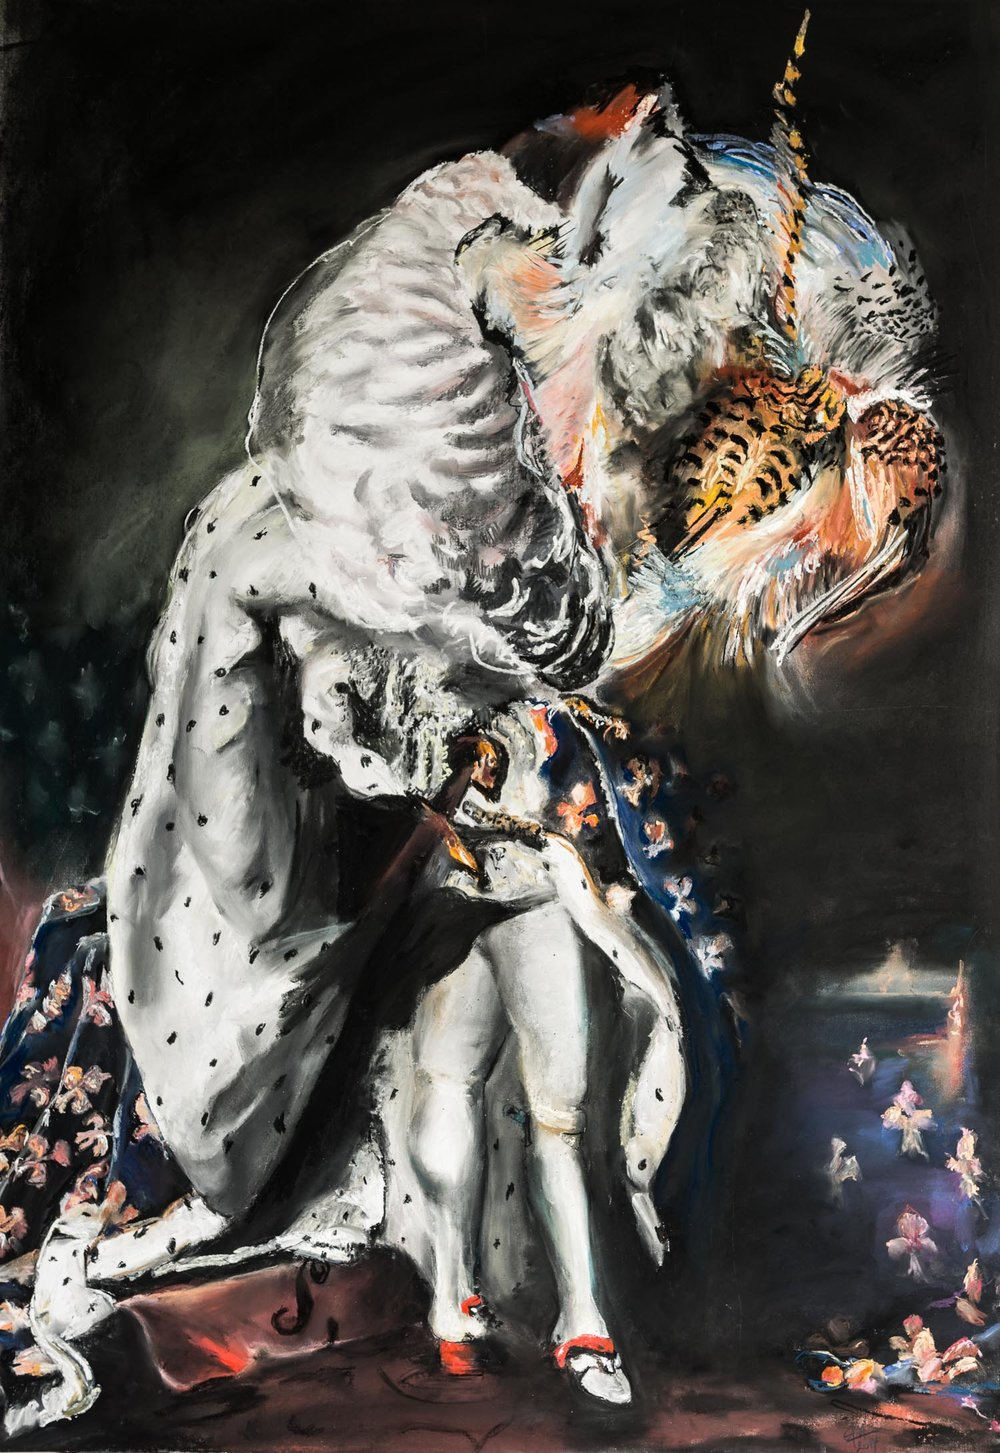 The Smothering of His Lordship, 2014